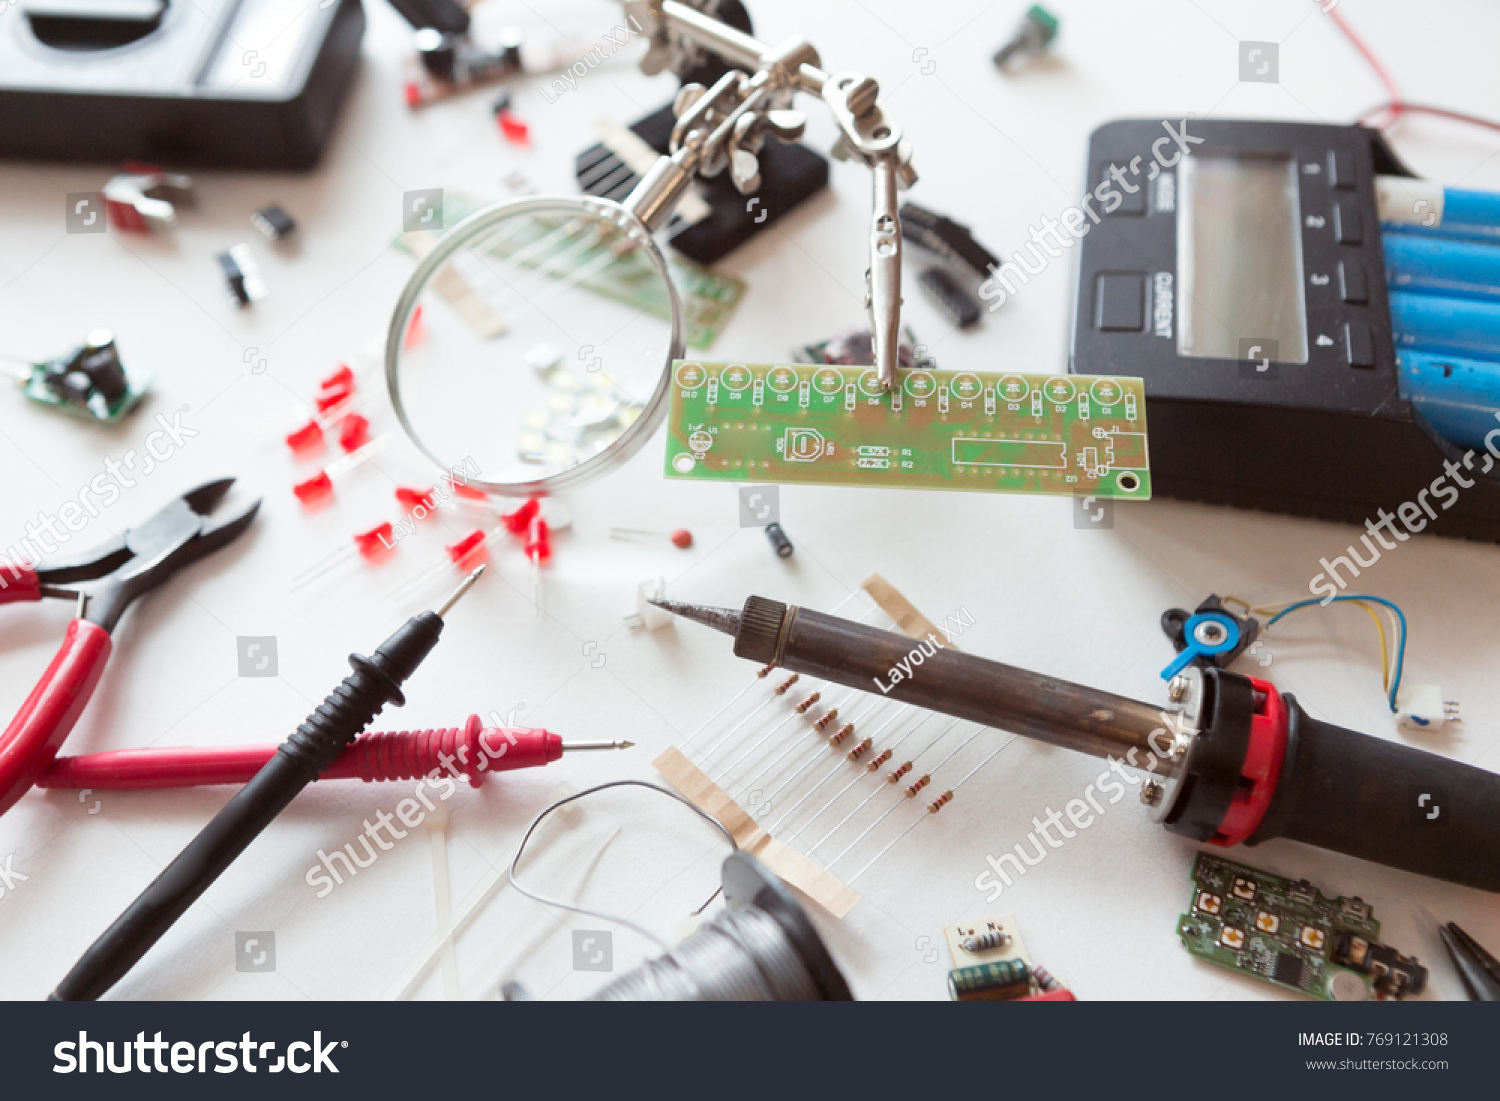 Electrician Plumber Tools Electrical Parts Components Stock Photo ...